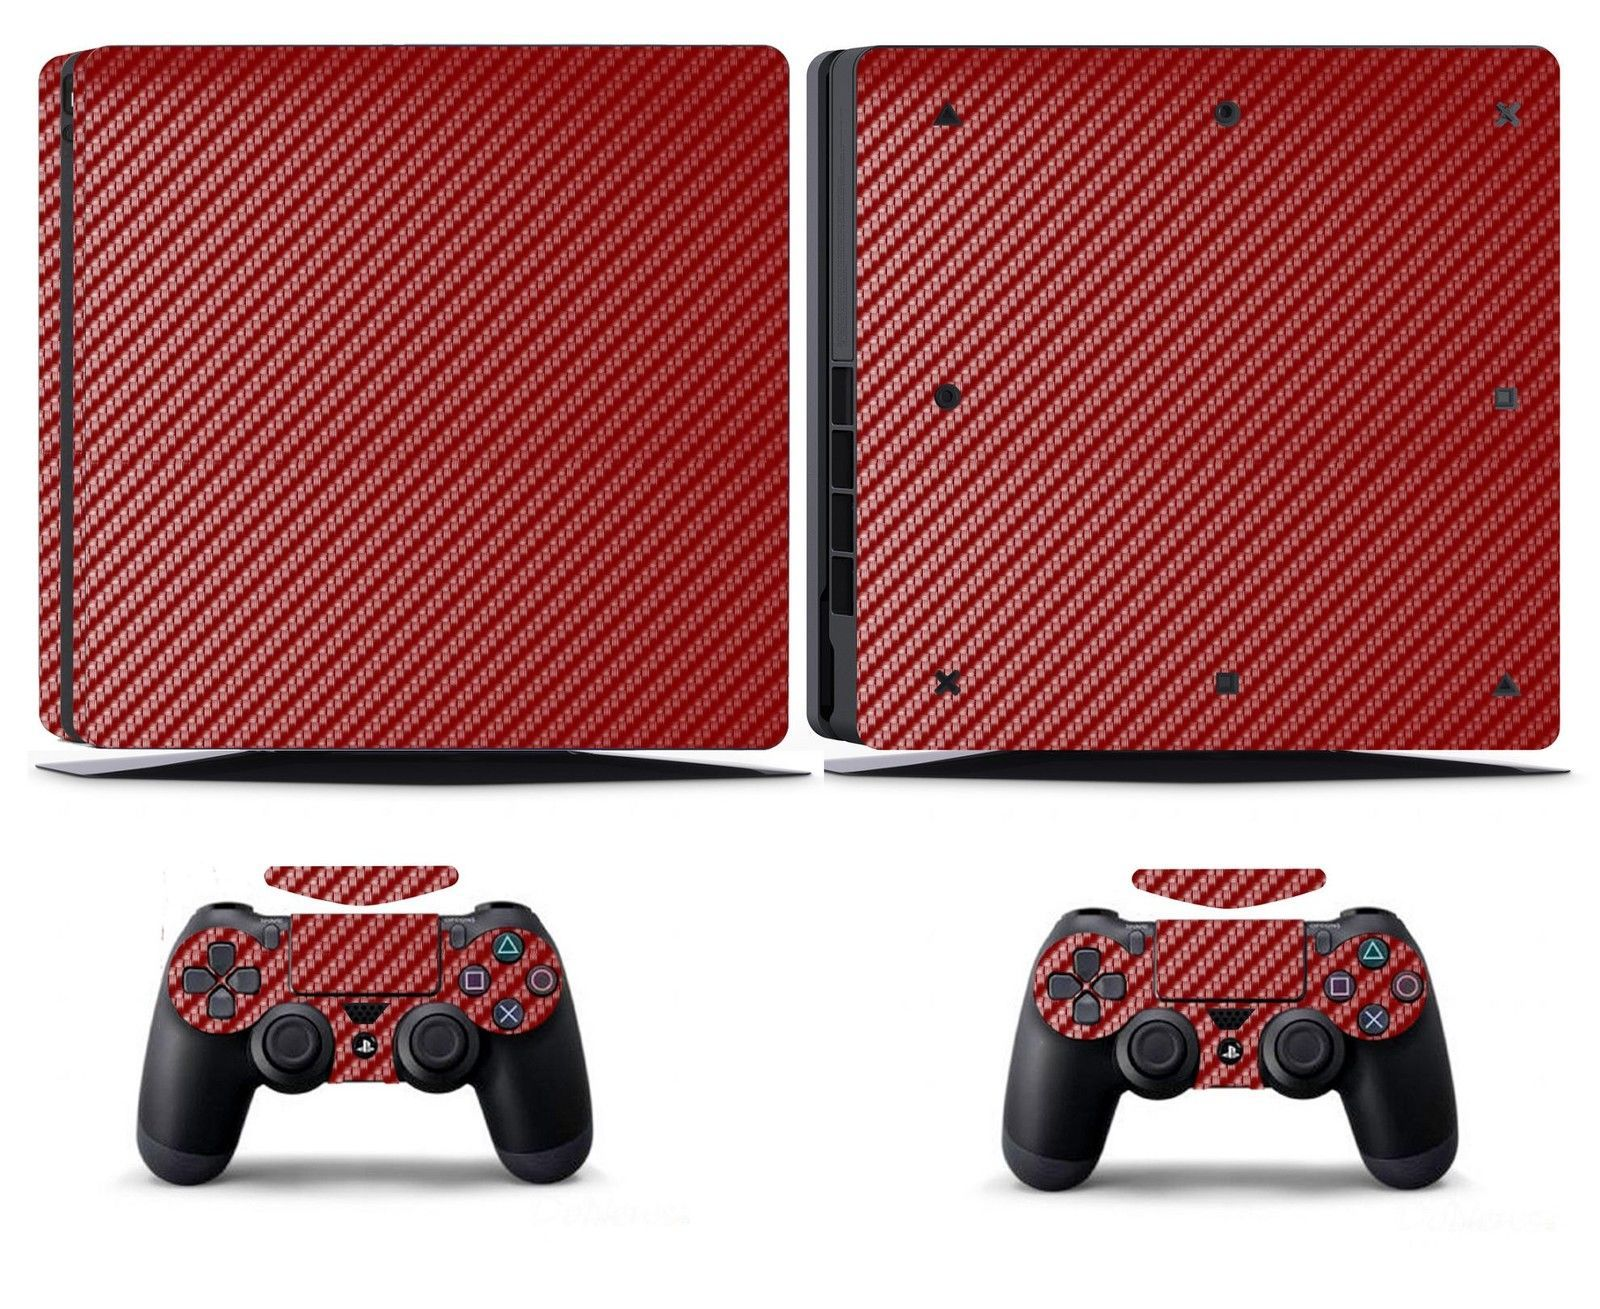 Faceplates, Decals & Stickers Red Carbon Fiber Vinyl Skin Sticker Cover For Sony Ps4 Slim Playstation 4 Slim